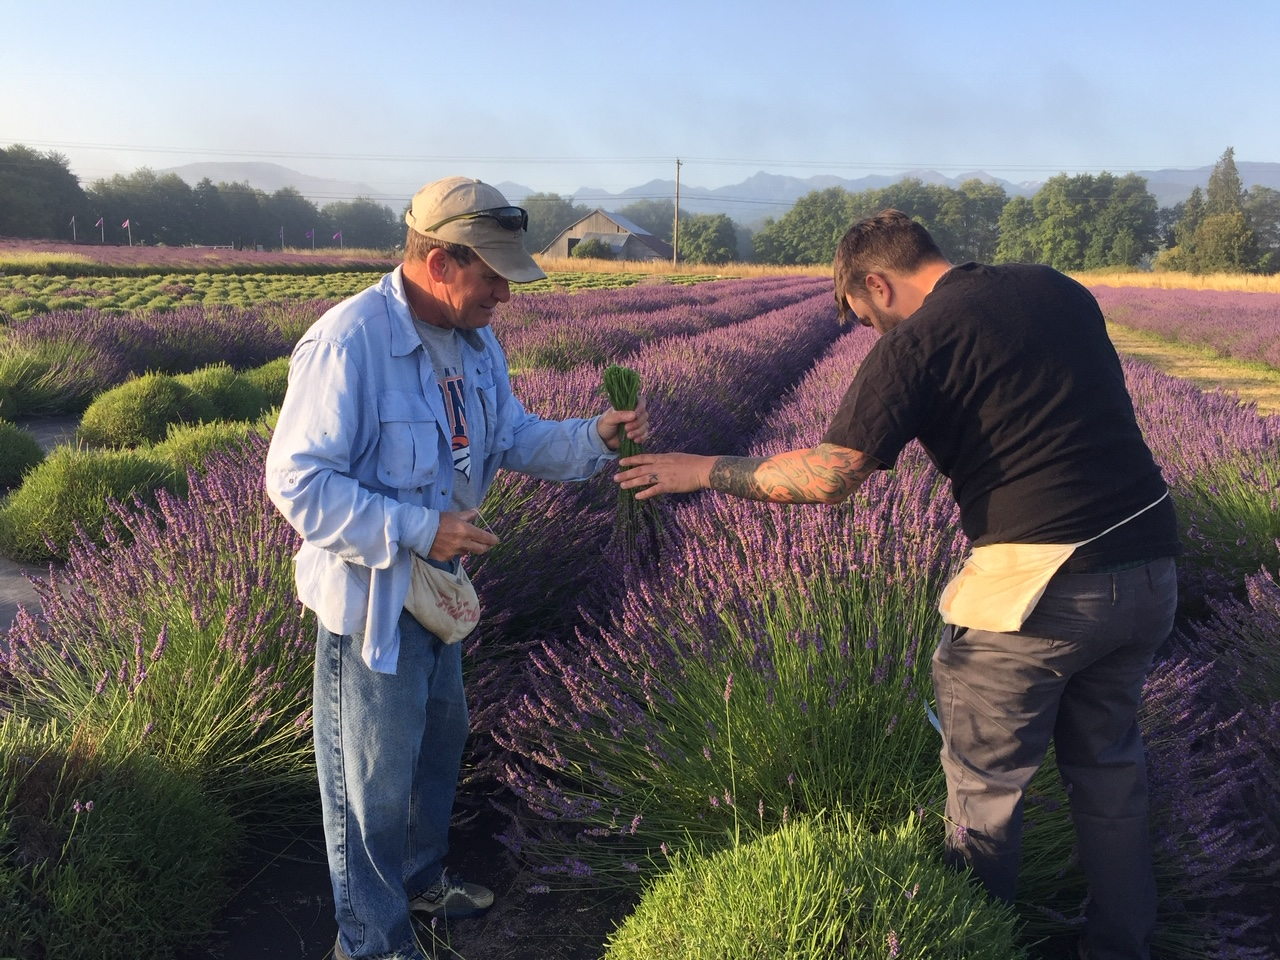 Zion and Mark Harvesting Lavender